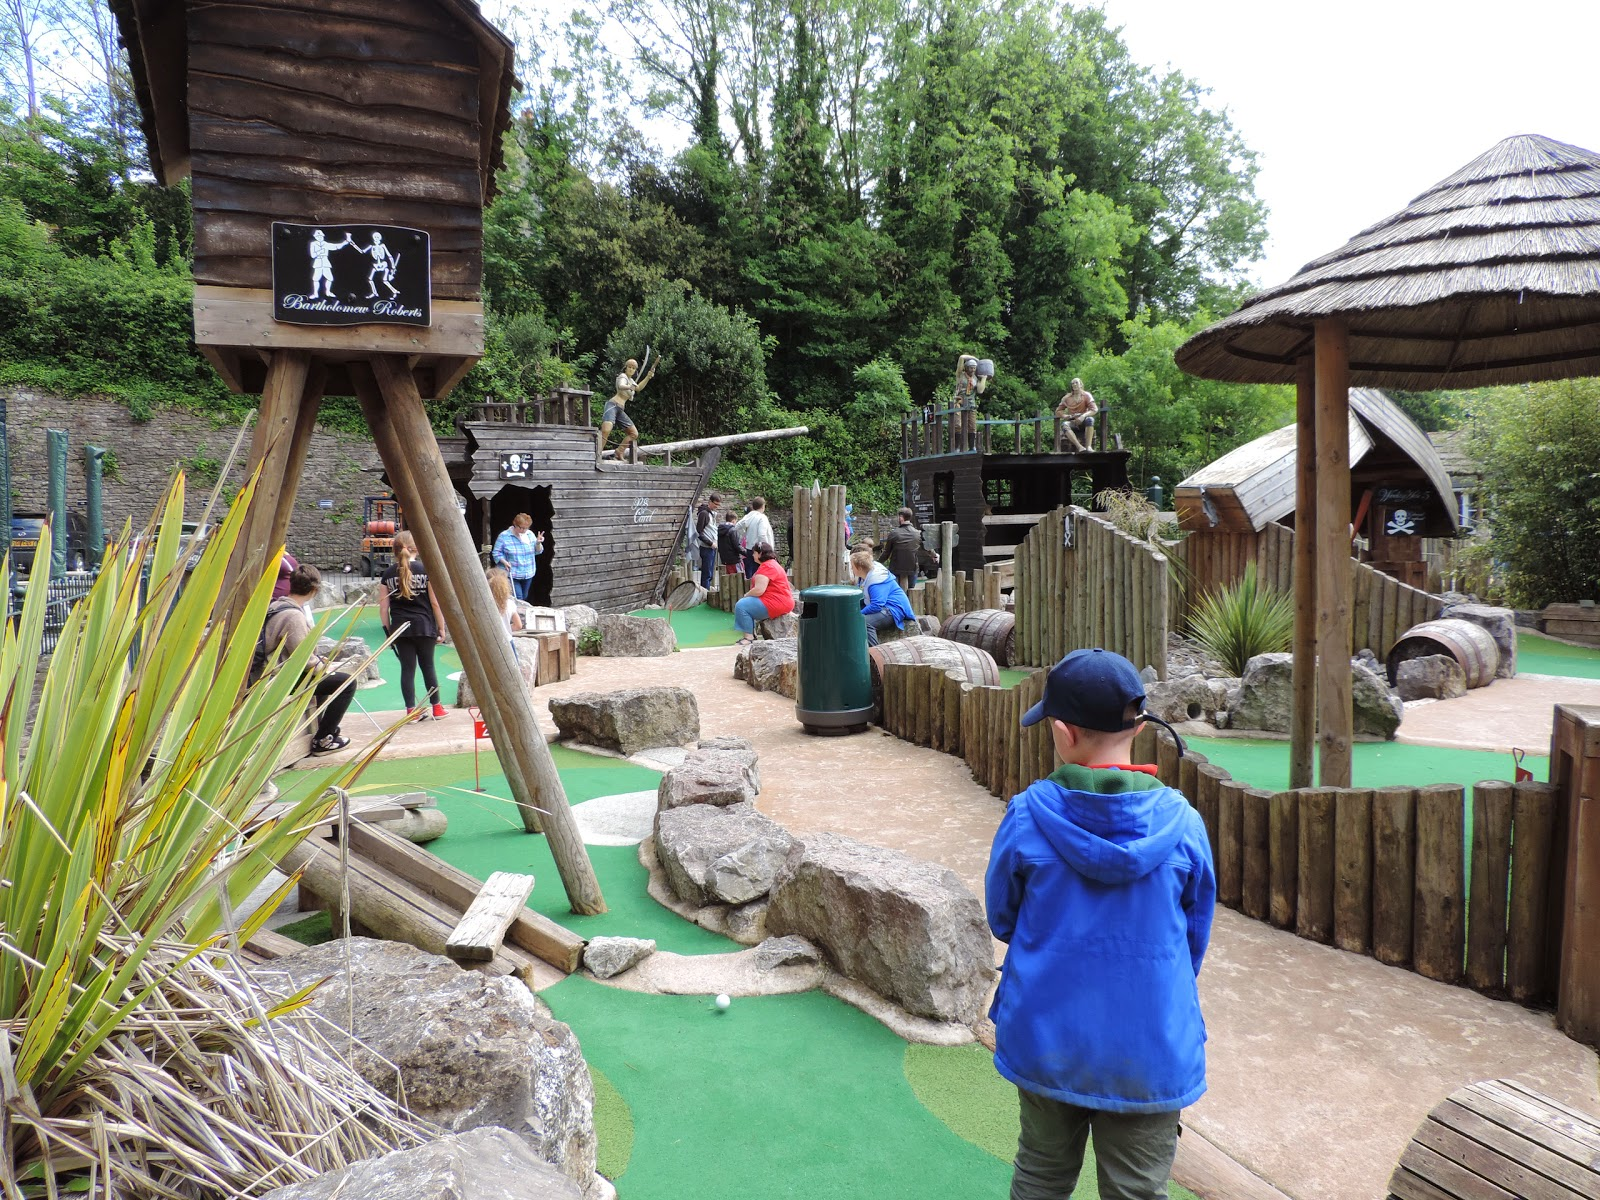 crazy golf putting course and captain jack's restaurant